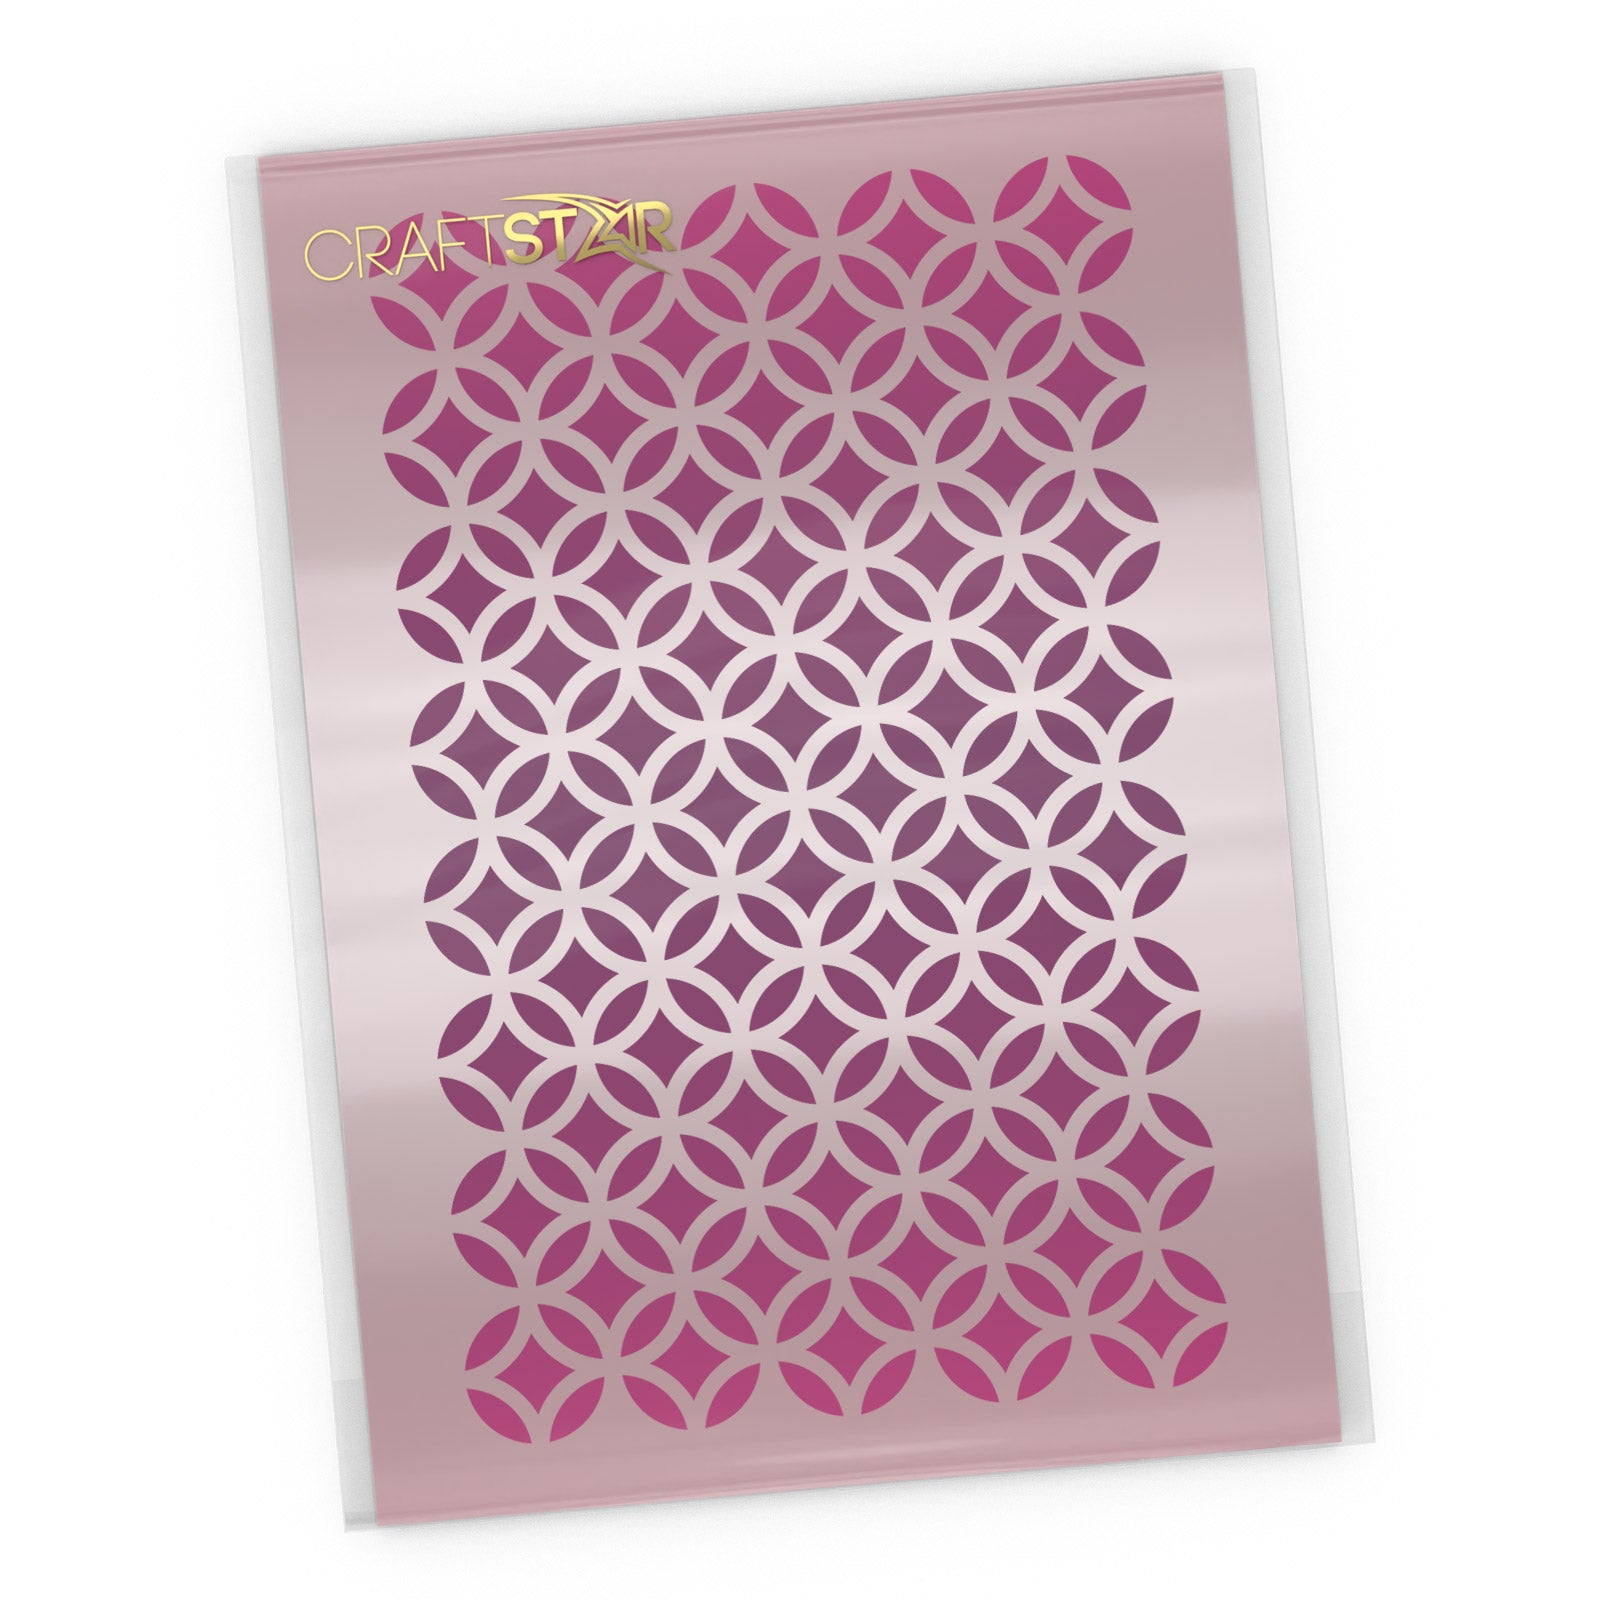 Circle & Diamond Pattern Stencil - Moorish Pattern Craft Template